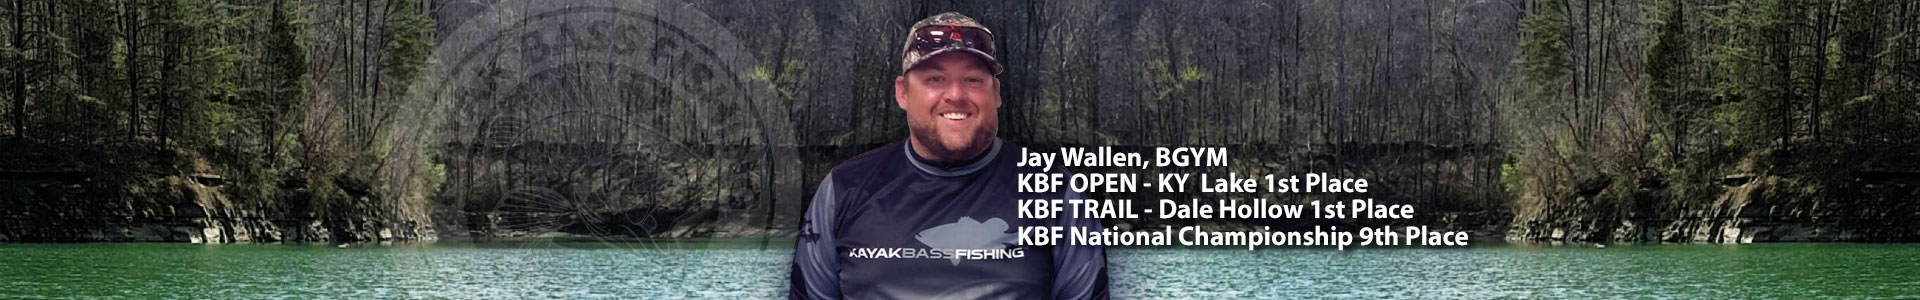 Jay Wallen, 2016 KBF Angler of the Year